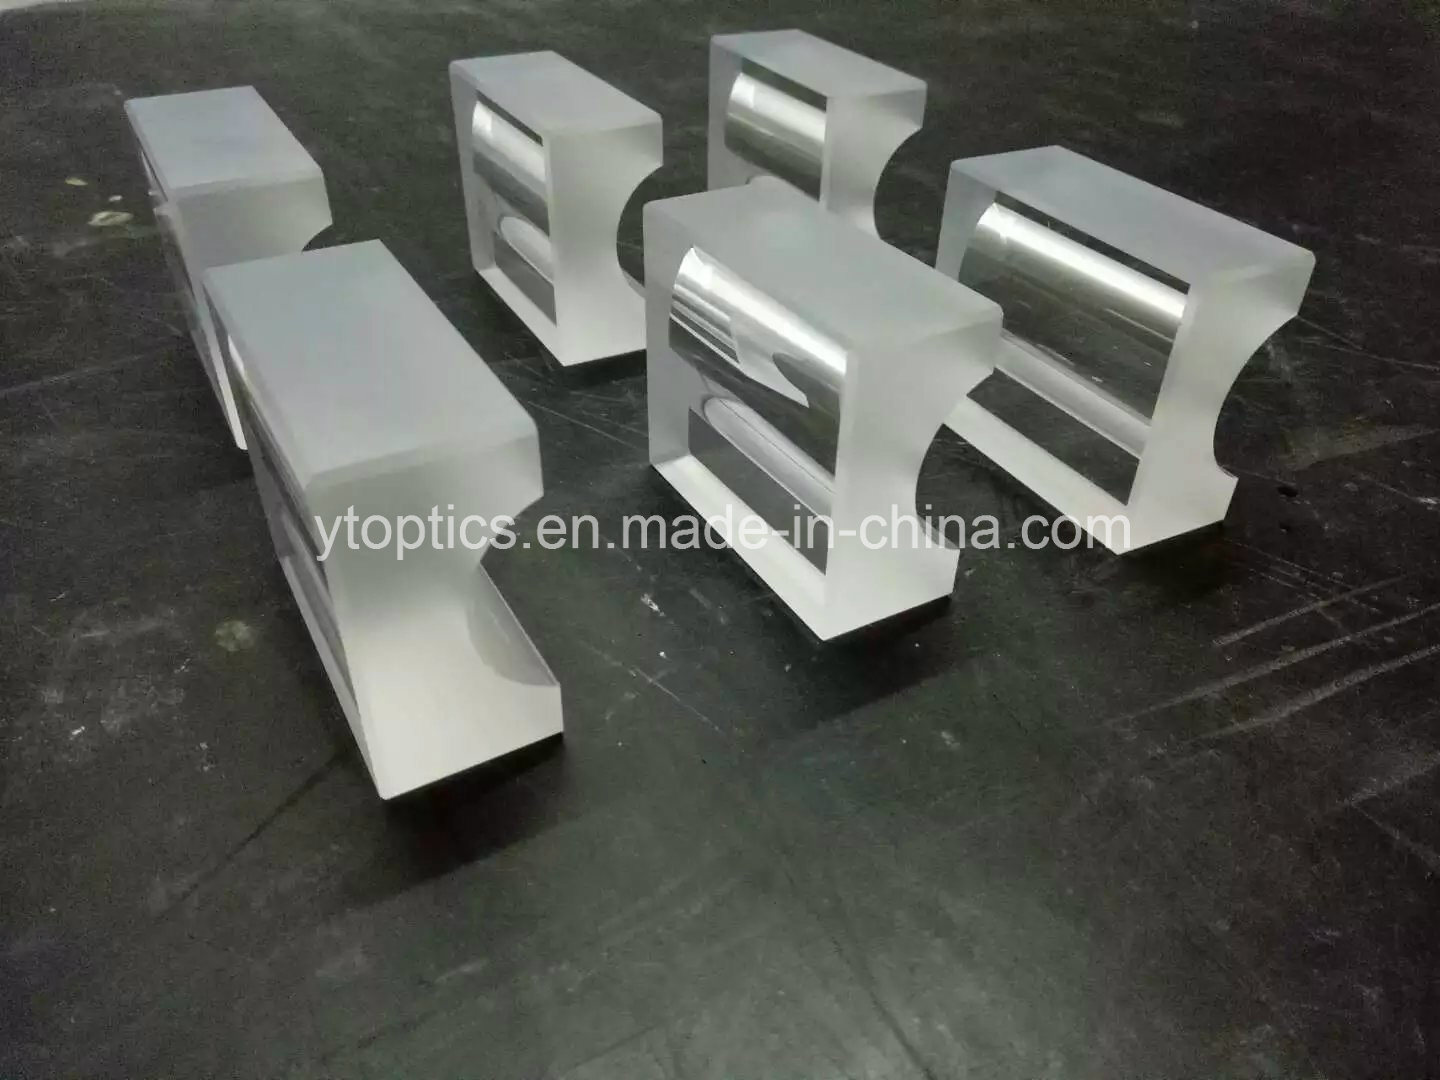 Made in China Plano Concave Aspheric Cylindrical Lens